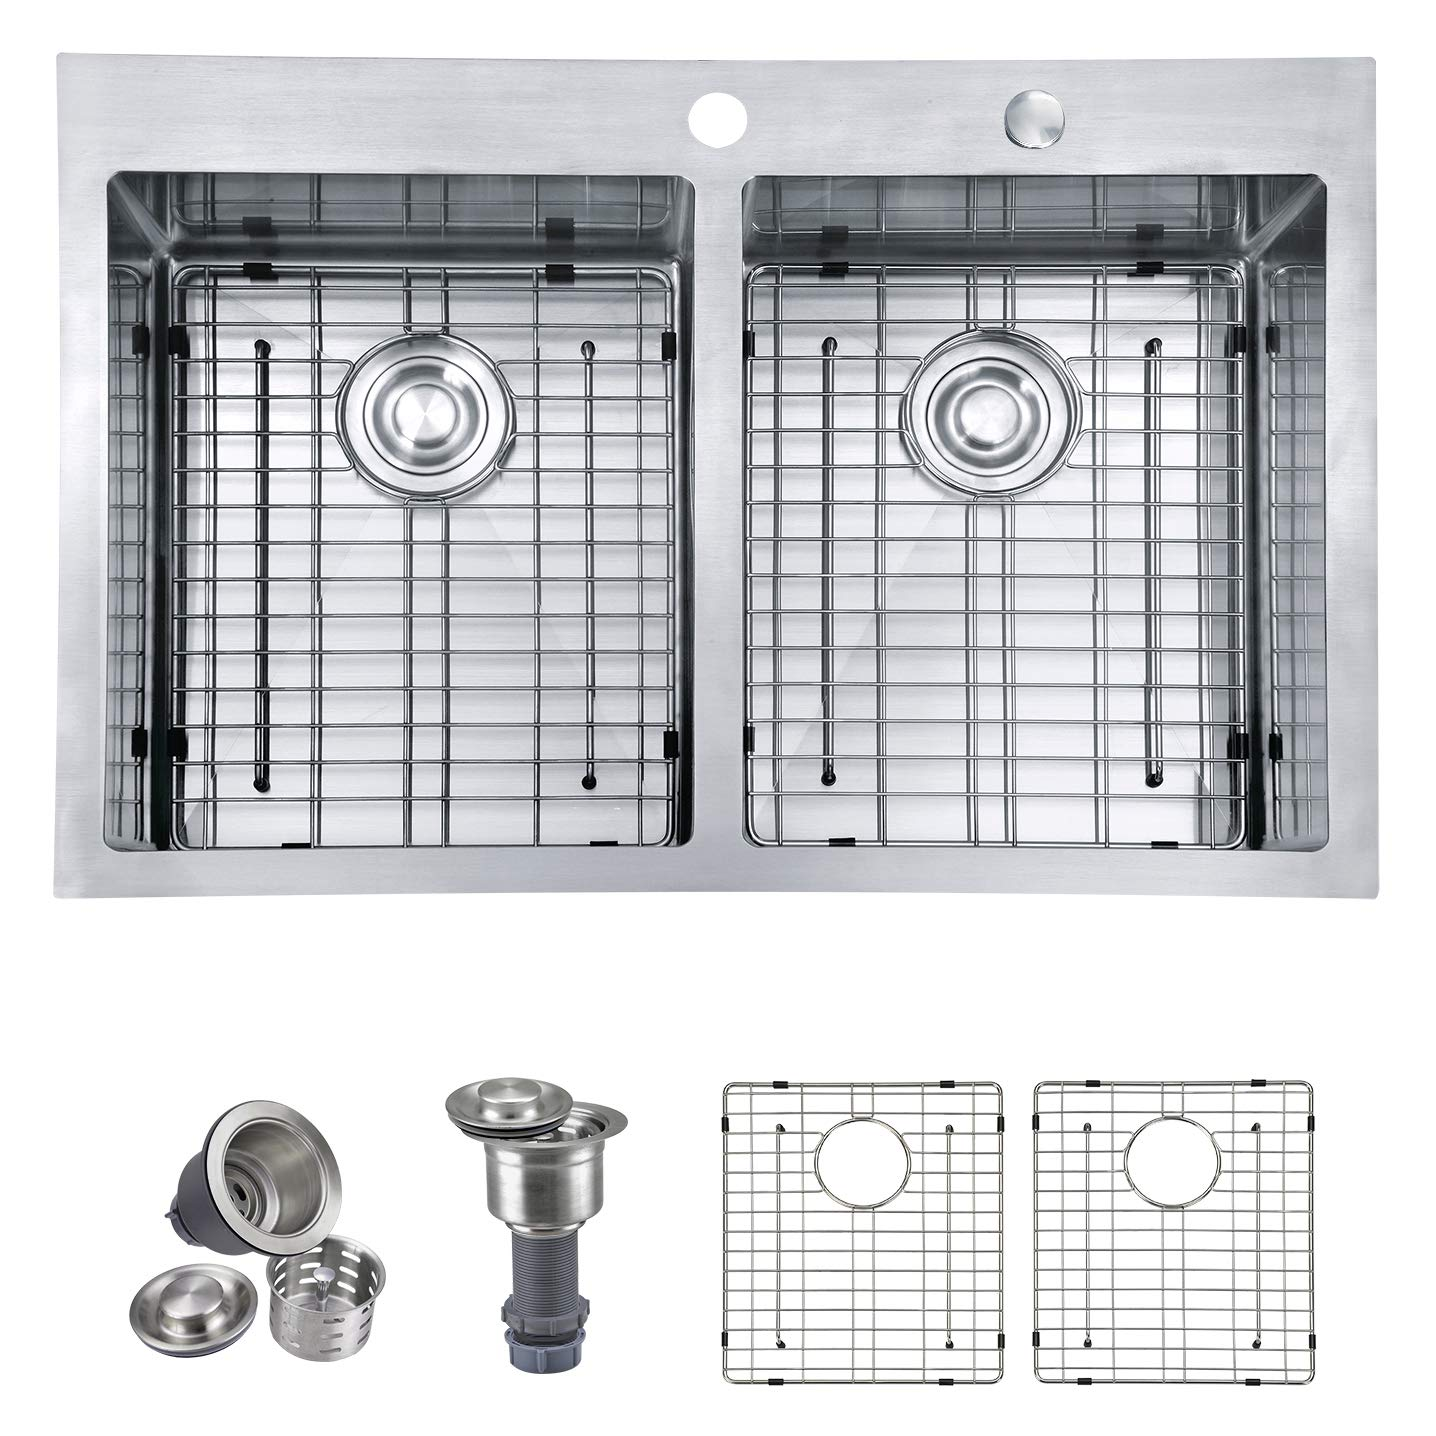 MOWA HTD33DE Upgraded Perfect Drainage Handmade 33 16 Gauge Stainless Steel Topmount 50 50 Double Bowl Kitchen Sink, Modern Tight-Radius Style, Commercial Deep Basin, w Sink Bottom Grids Strainers